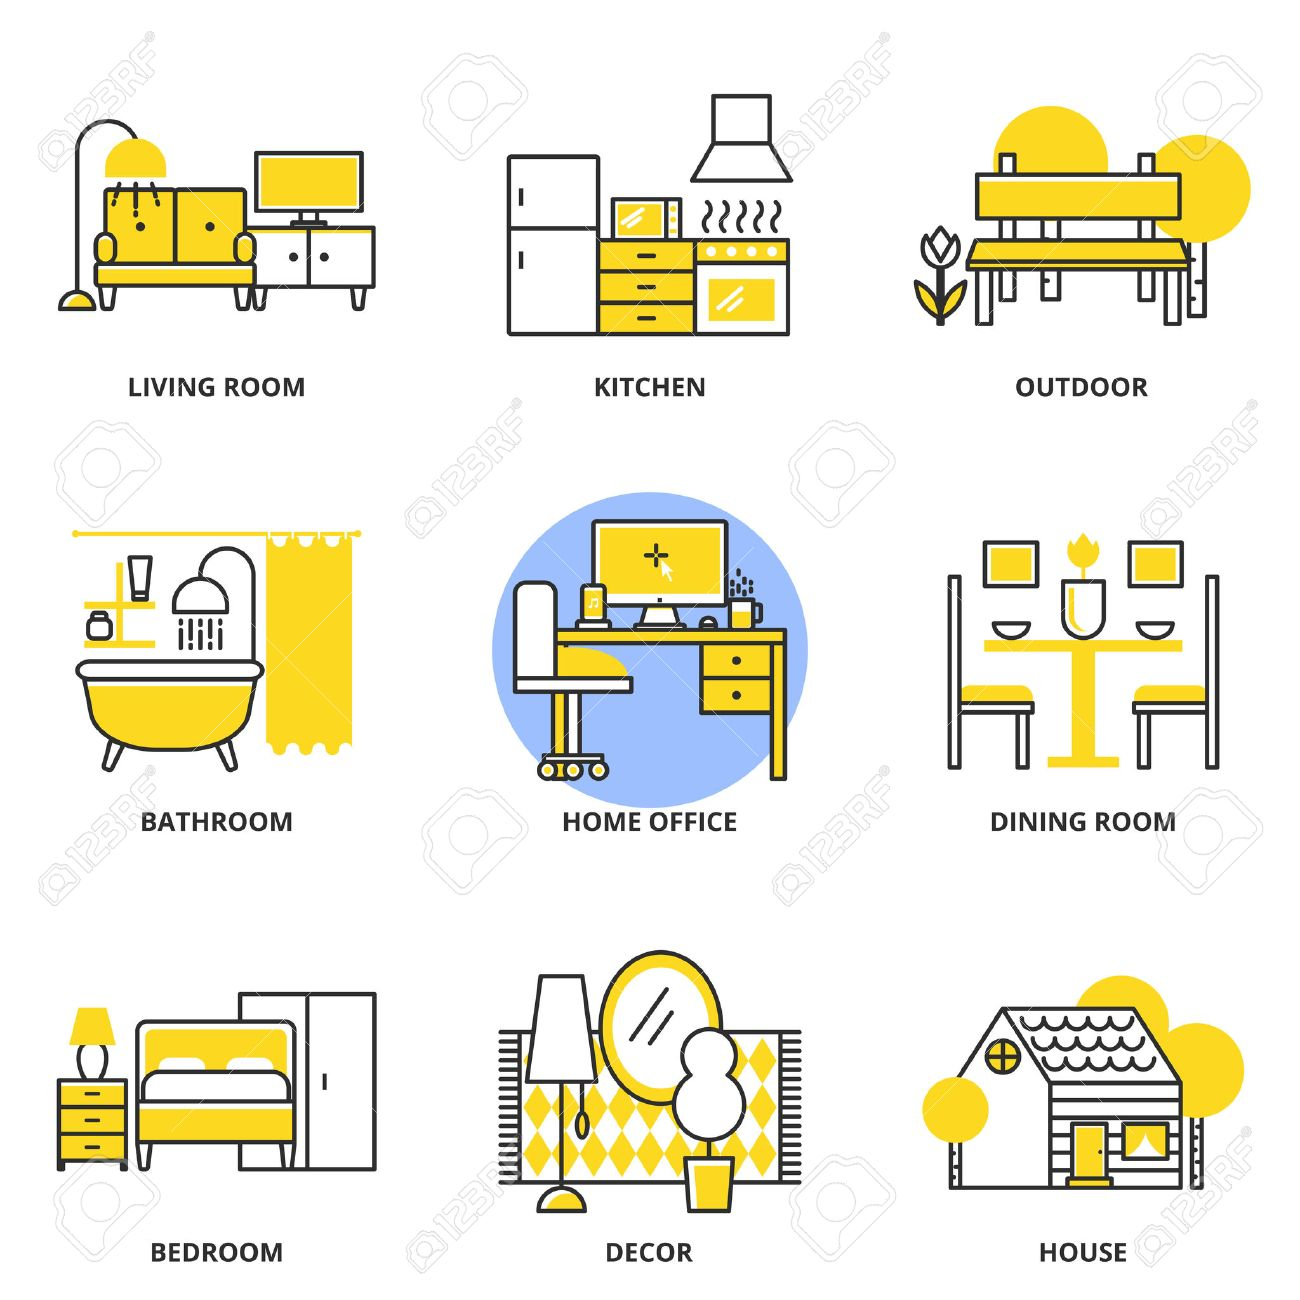 Furniture Vector Icons Set Living Room Kitchen Outdoor Bathroom Home Office